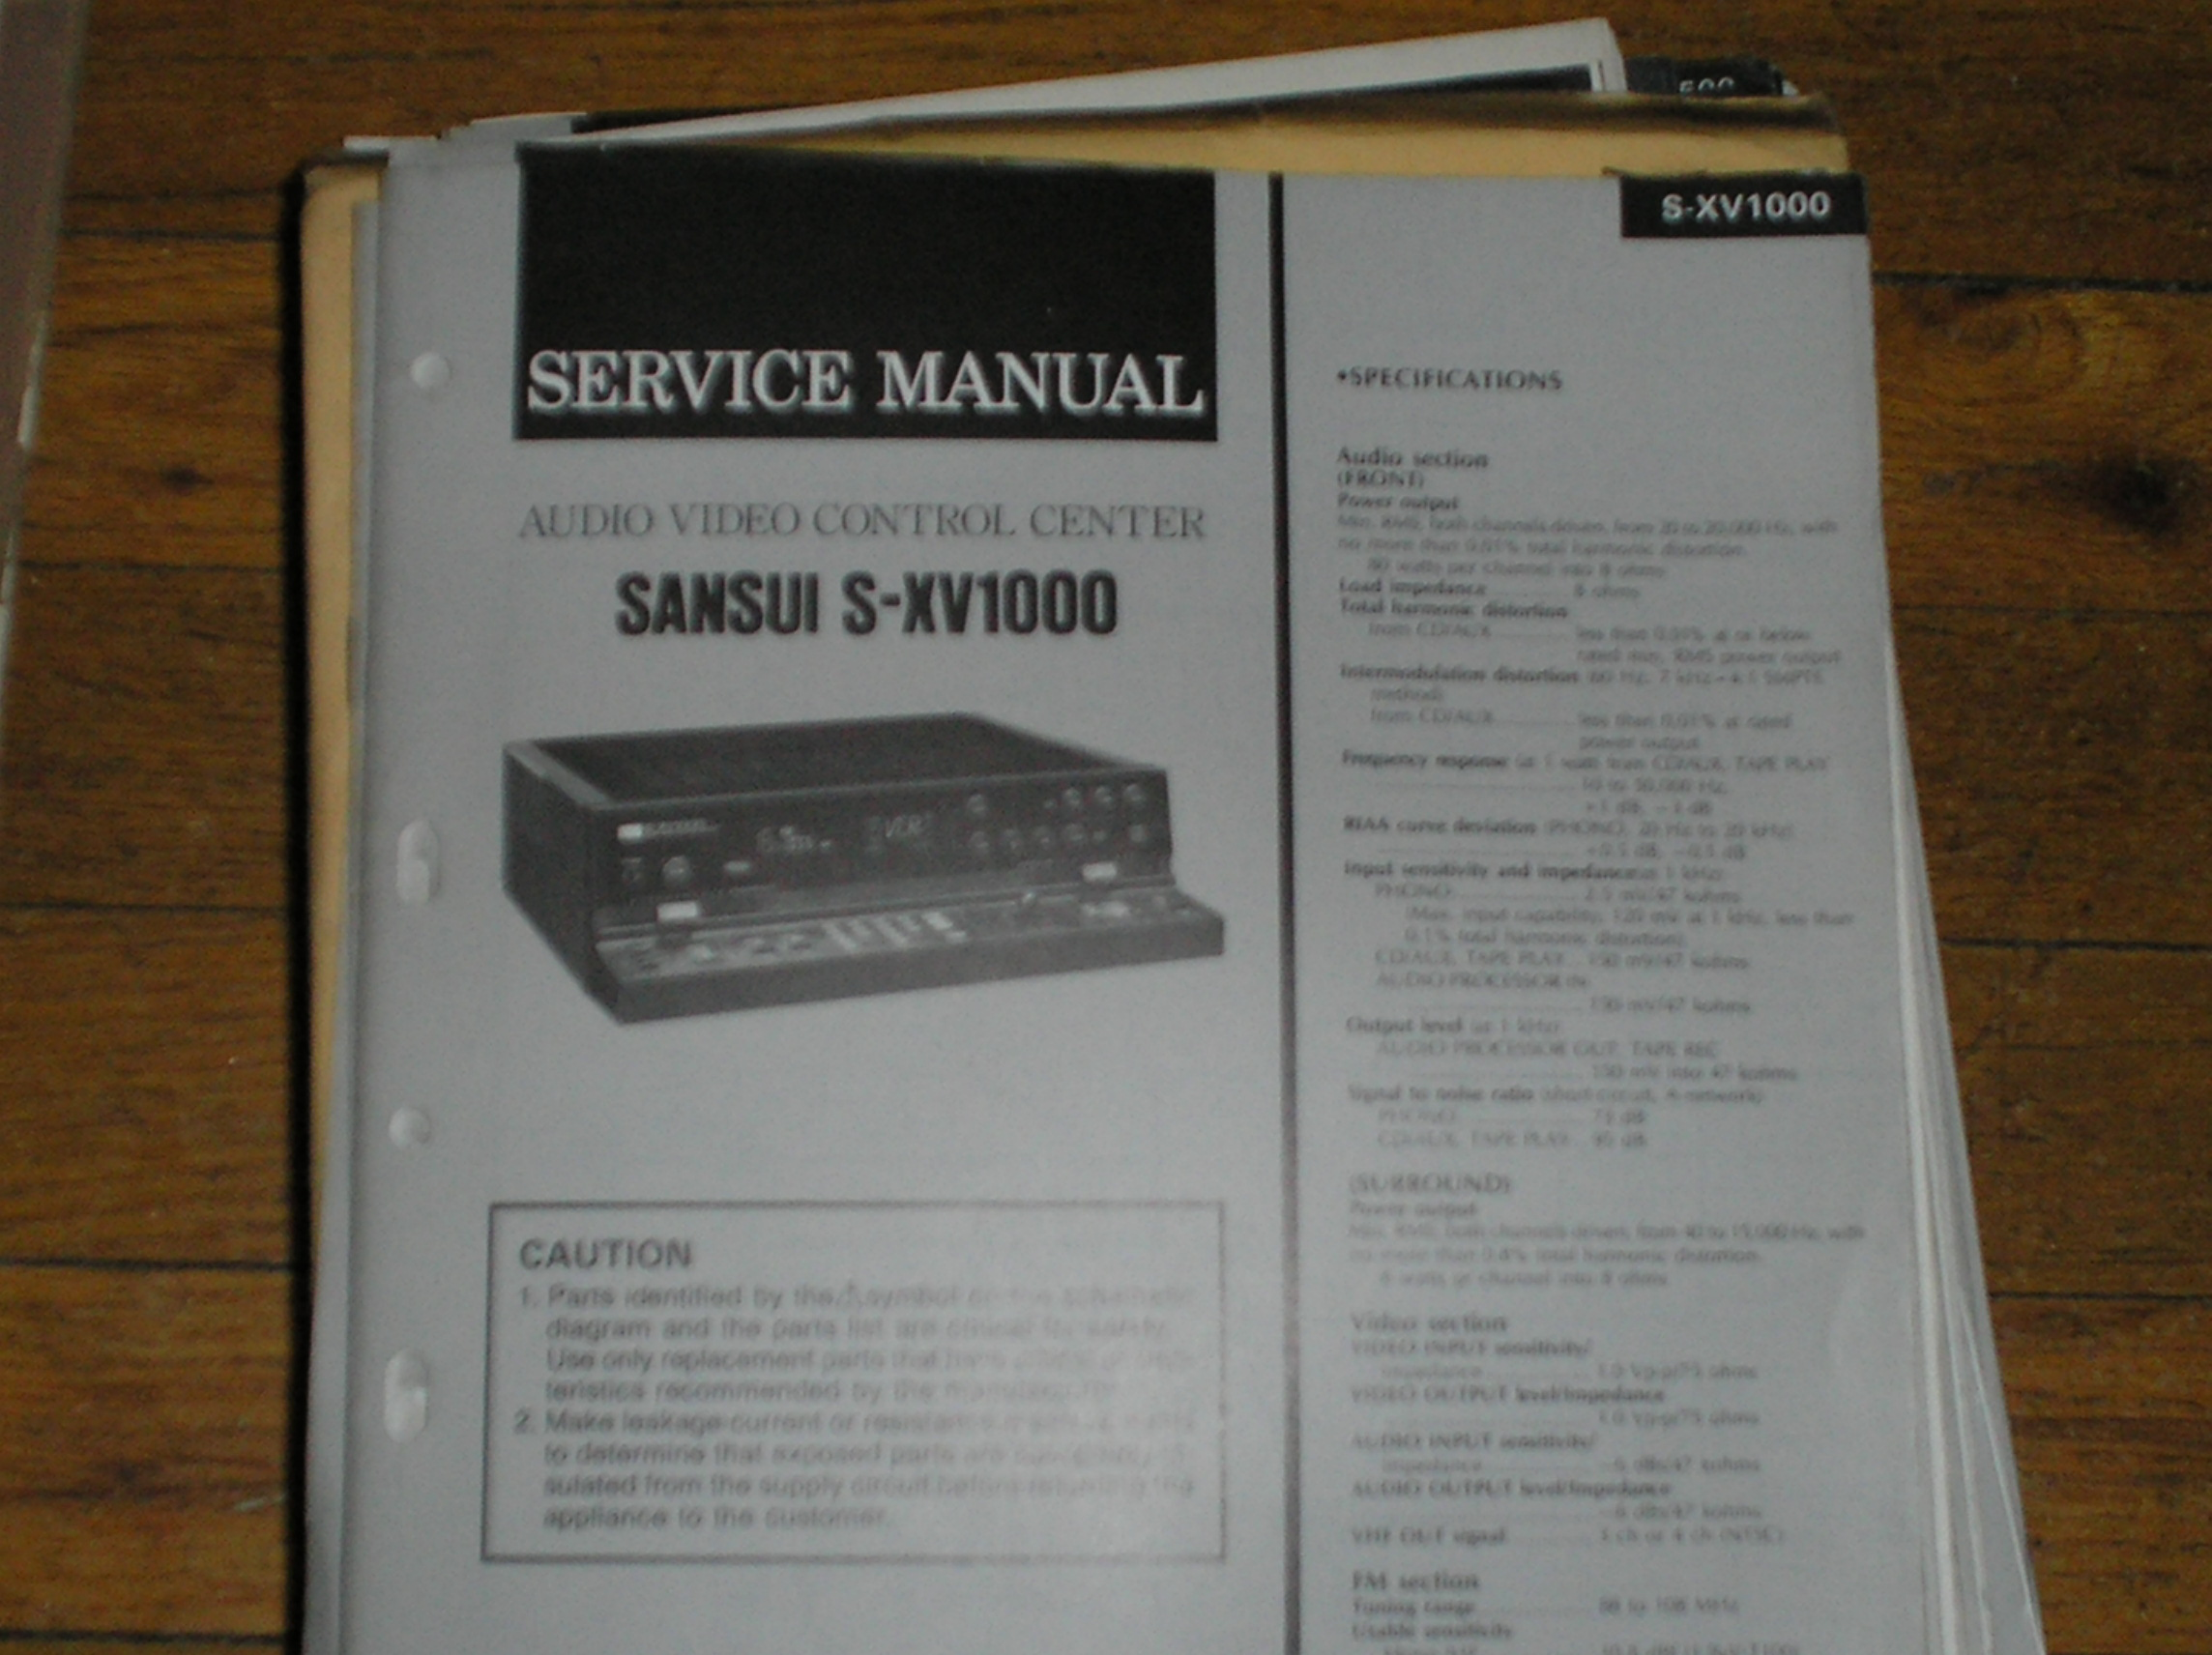 S-XV1000 Audio Video Controller Service Manual